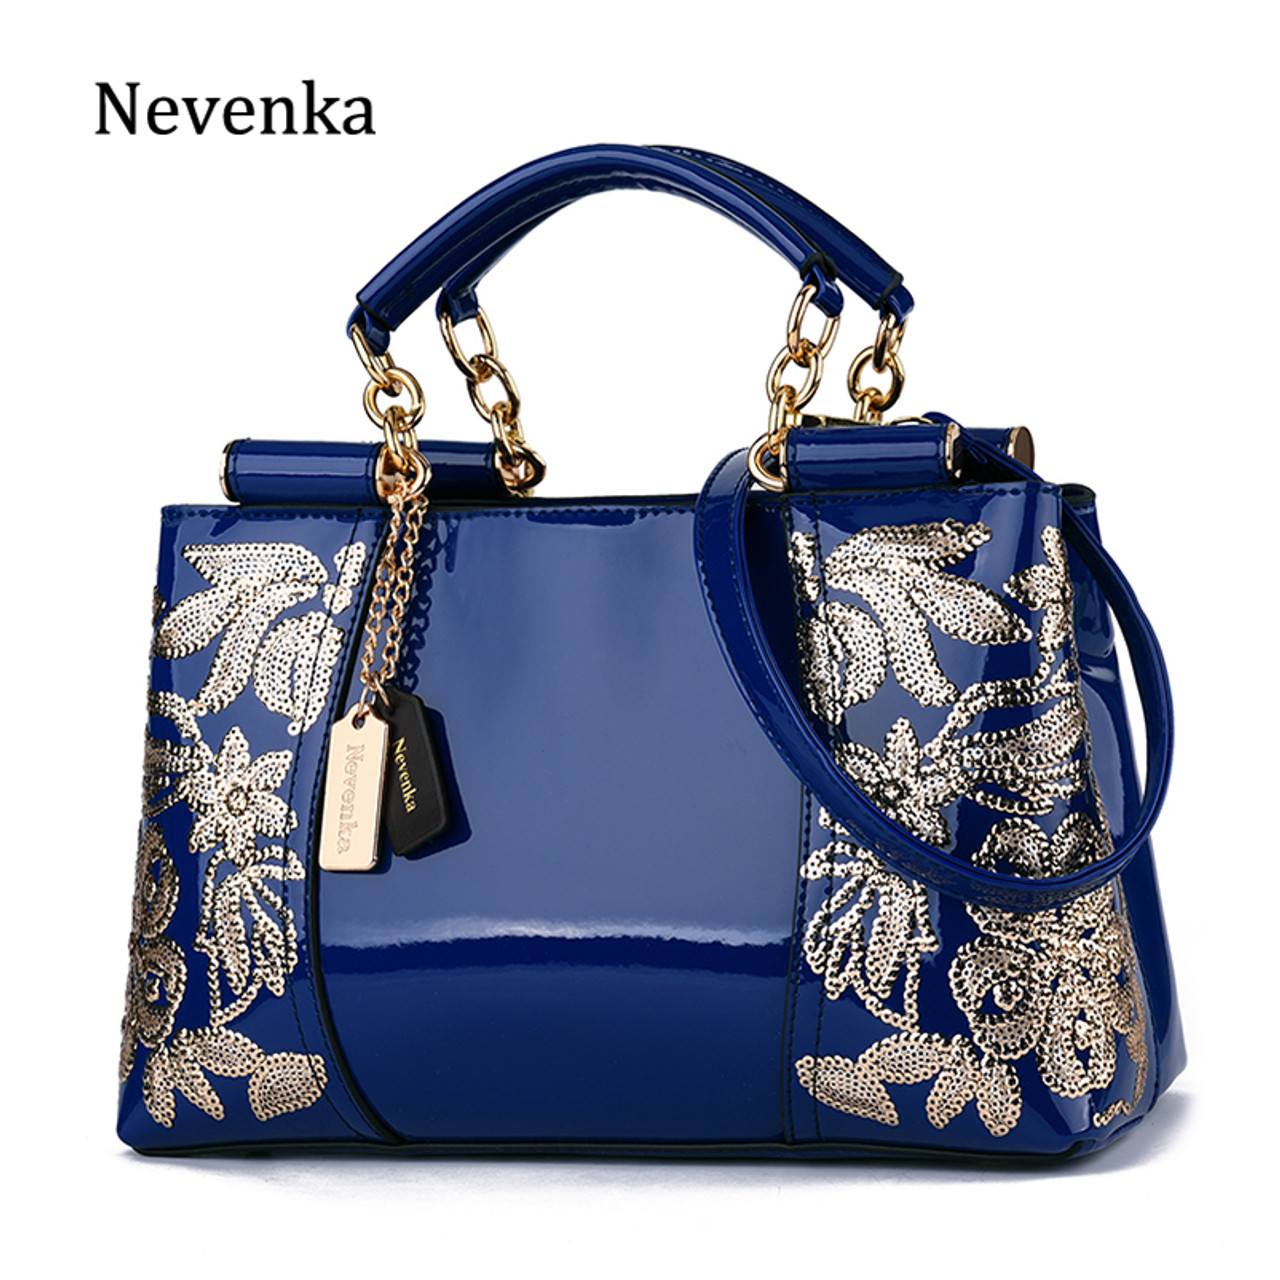 cec8b56714 Nevenka Luxury Evening Bags Women Leather Handbag Embroidery Shoulder Bags  Female Purses and Handbags with Sequins ...